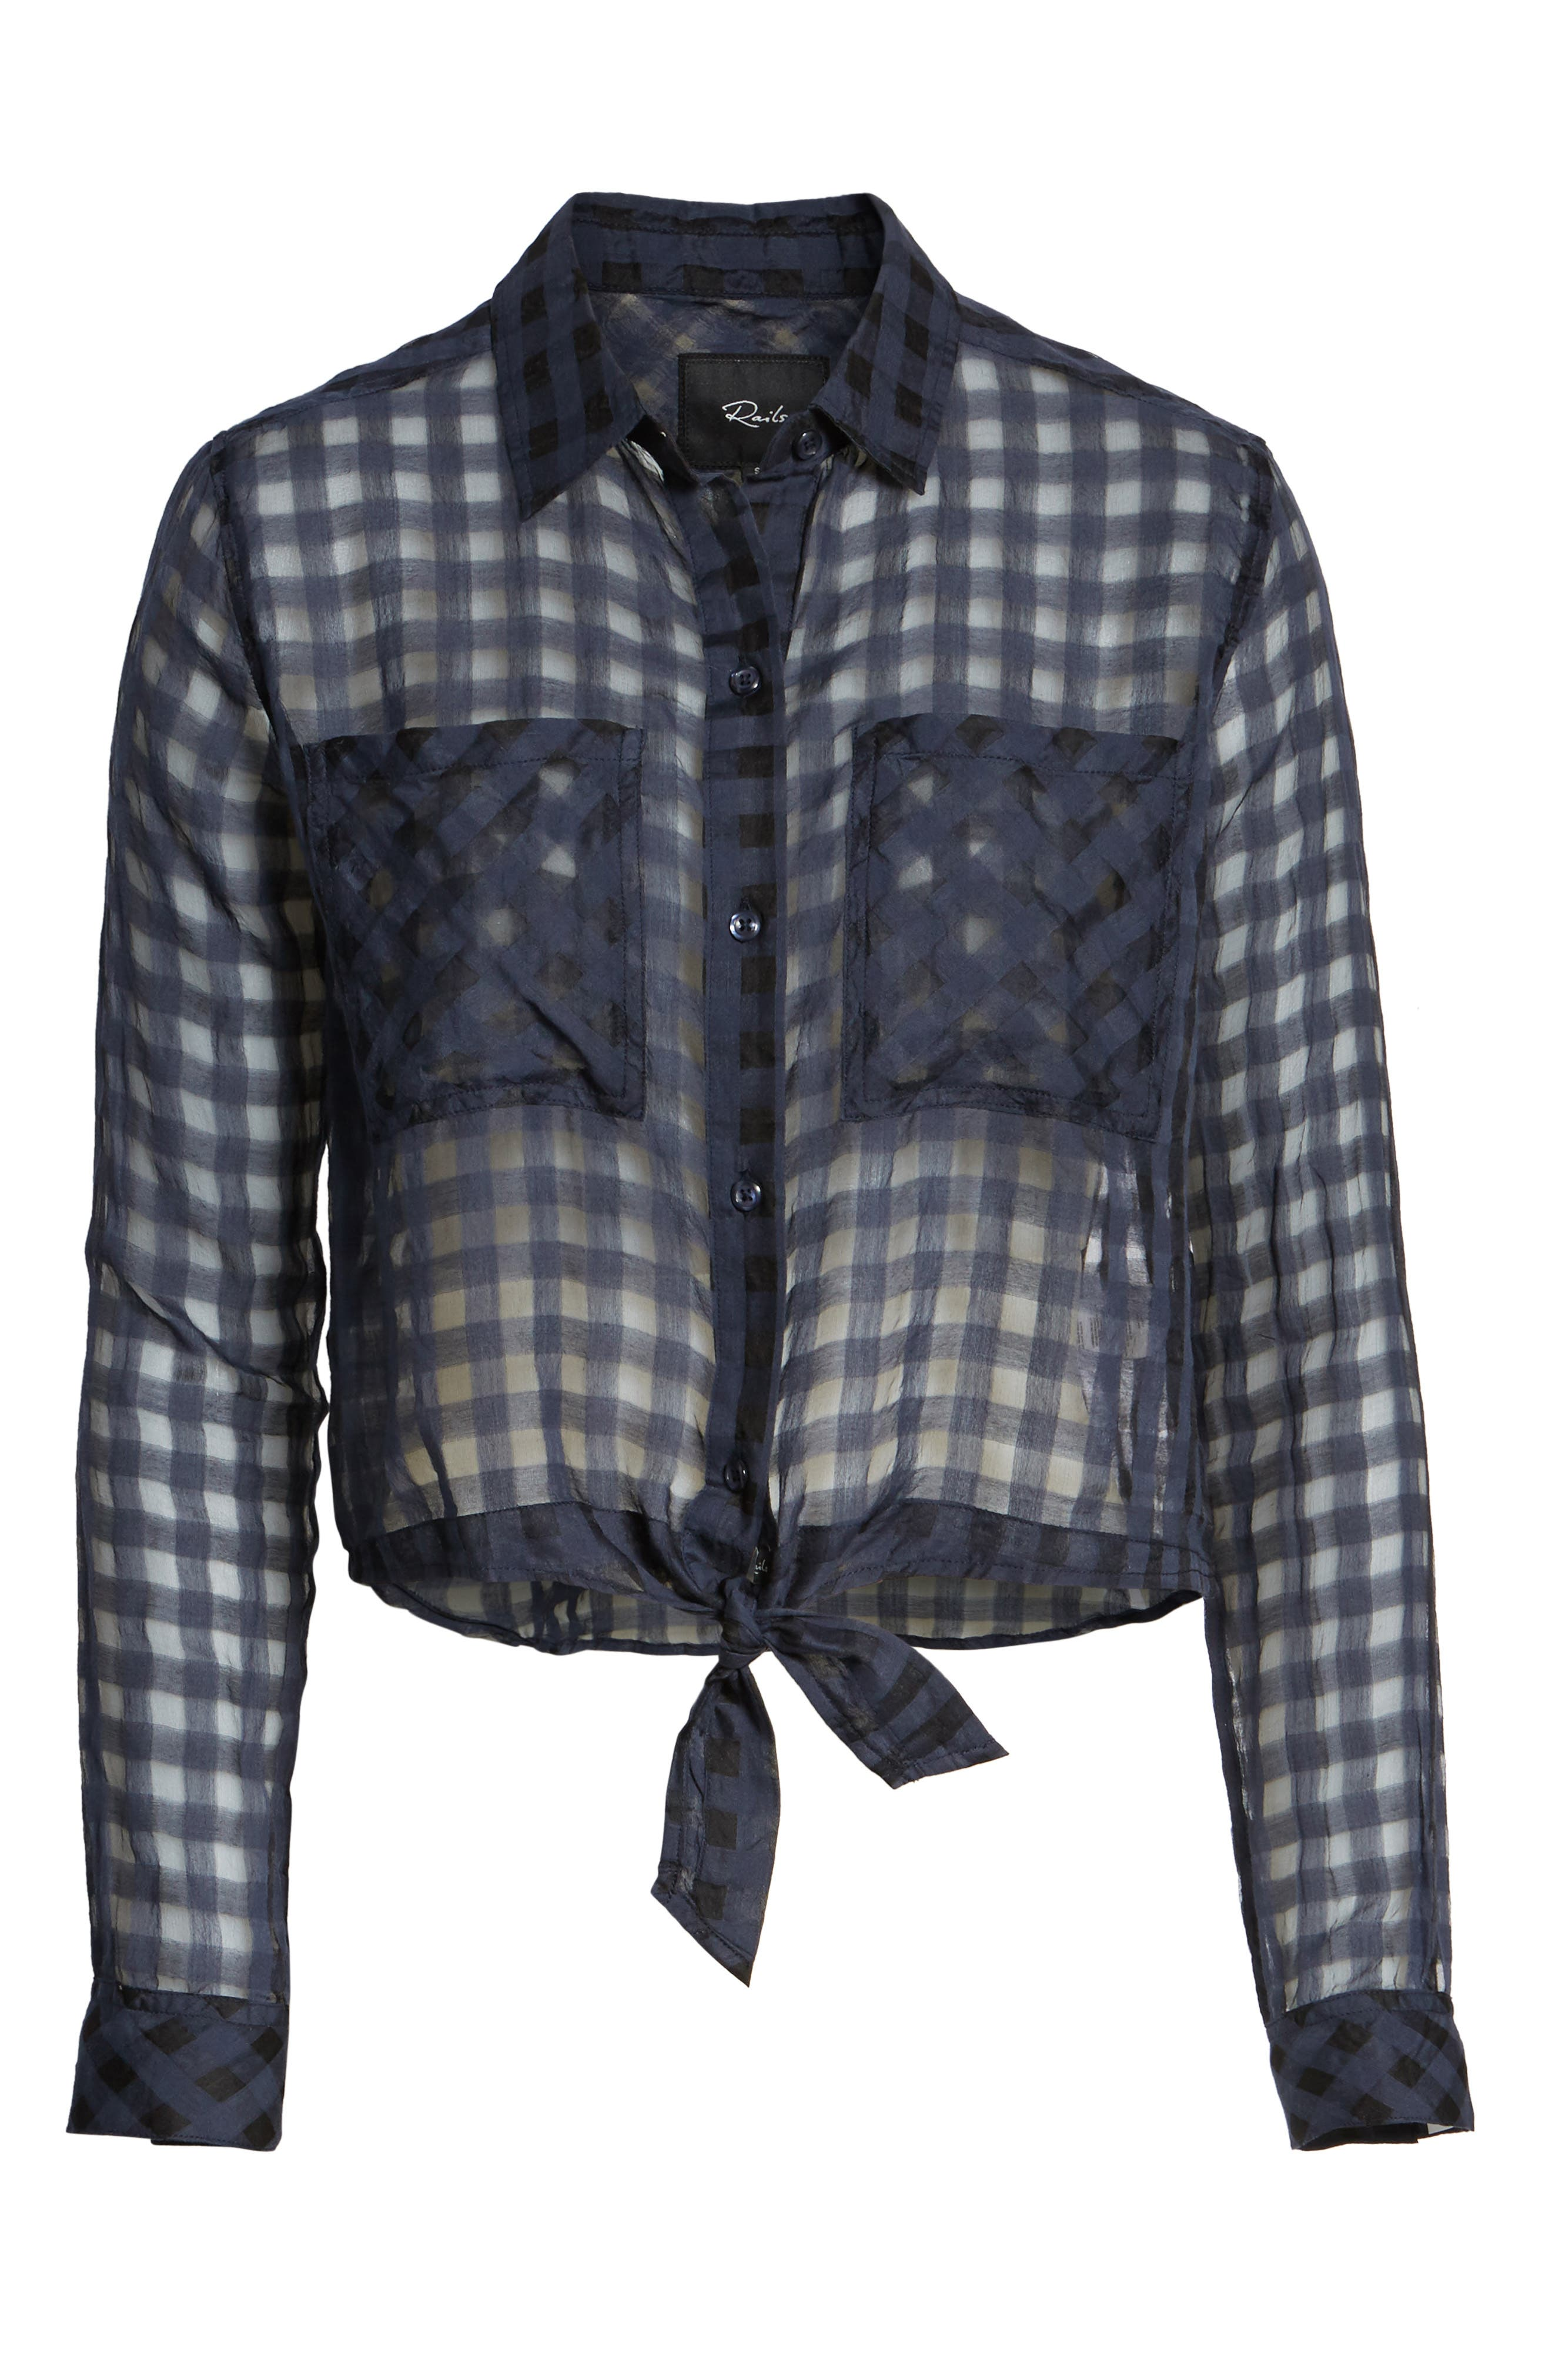 Kelsey Sheer Tie Front Shirt,                             Alternate thumbnail 6, color,                             Midnight Shadow Check